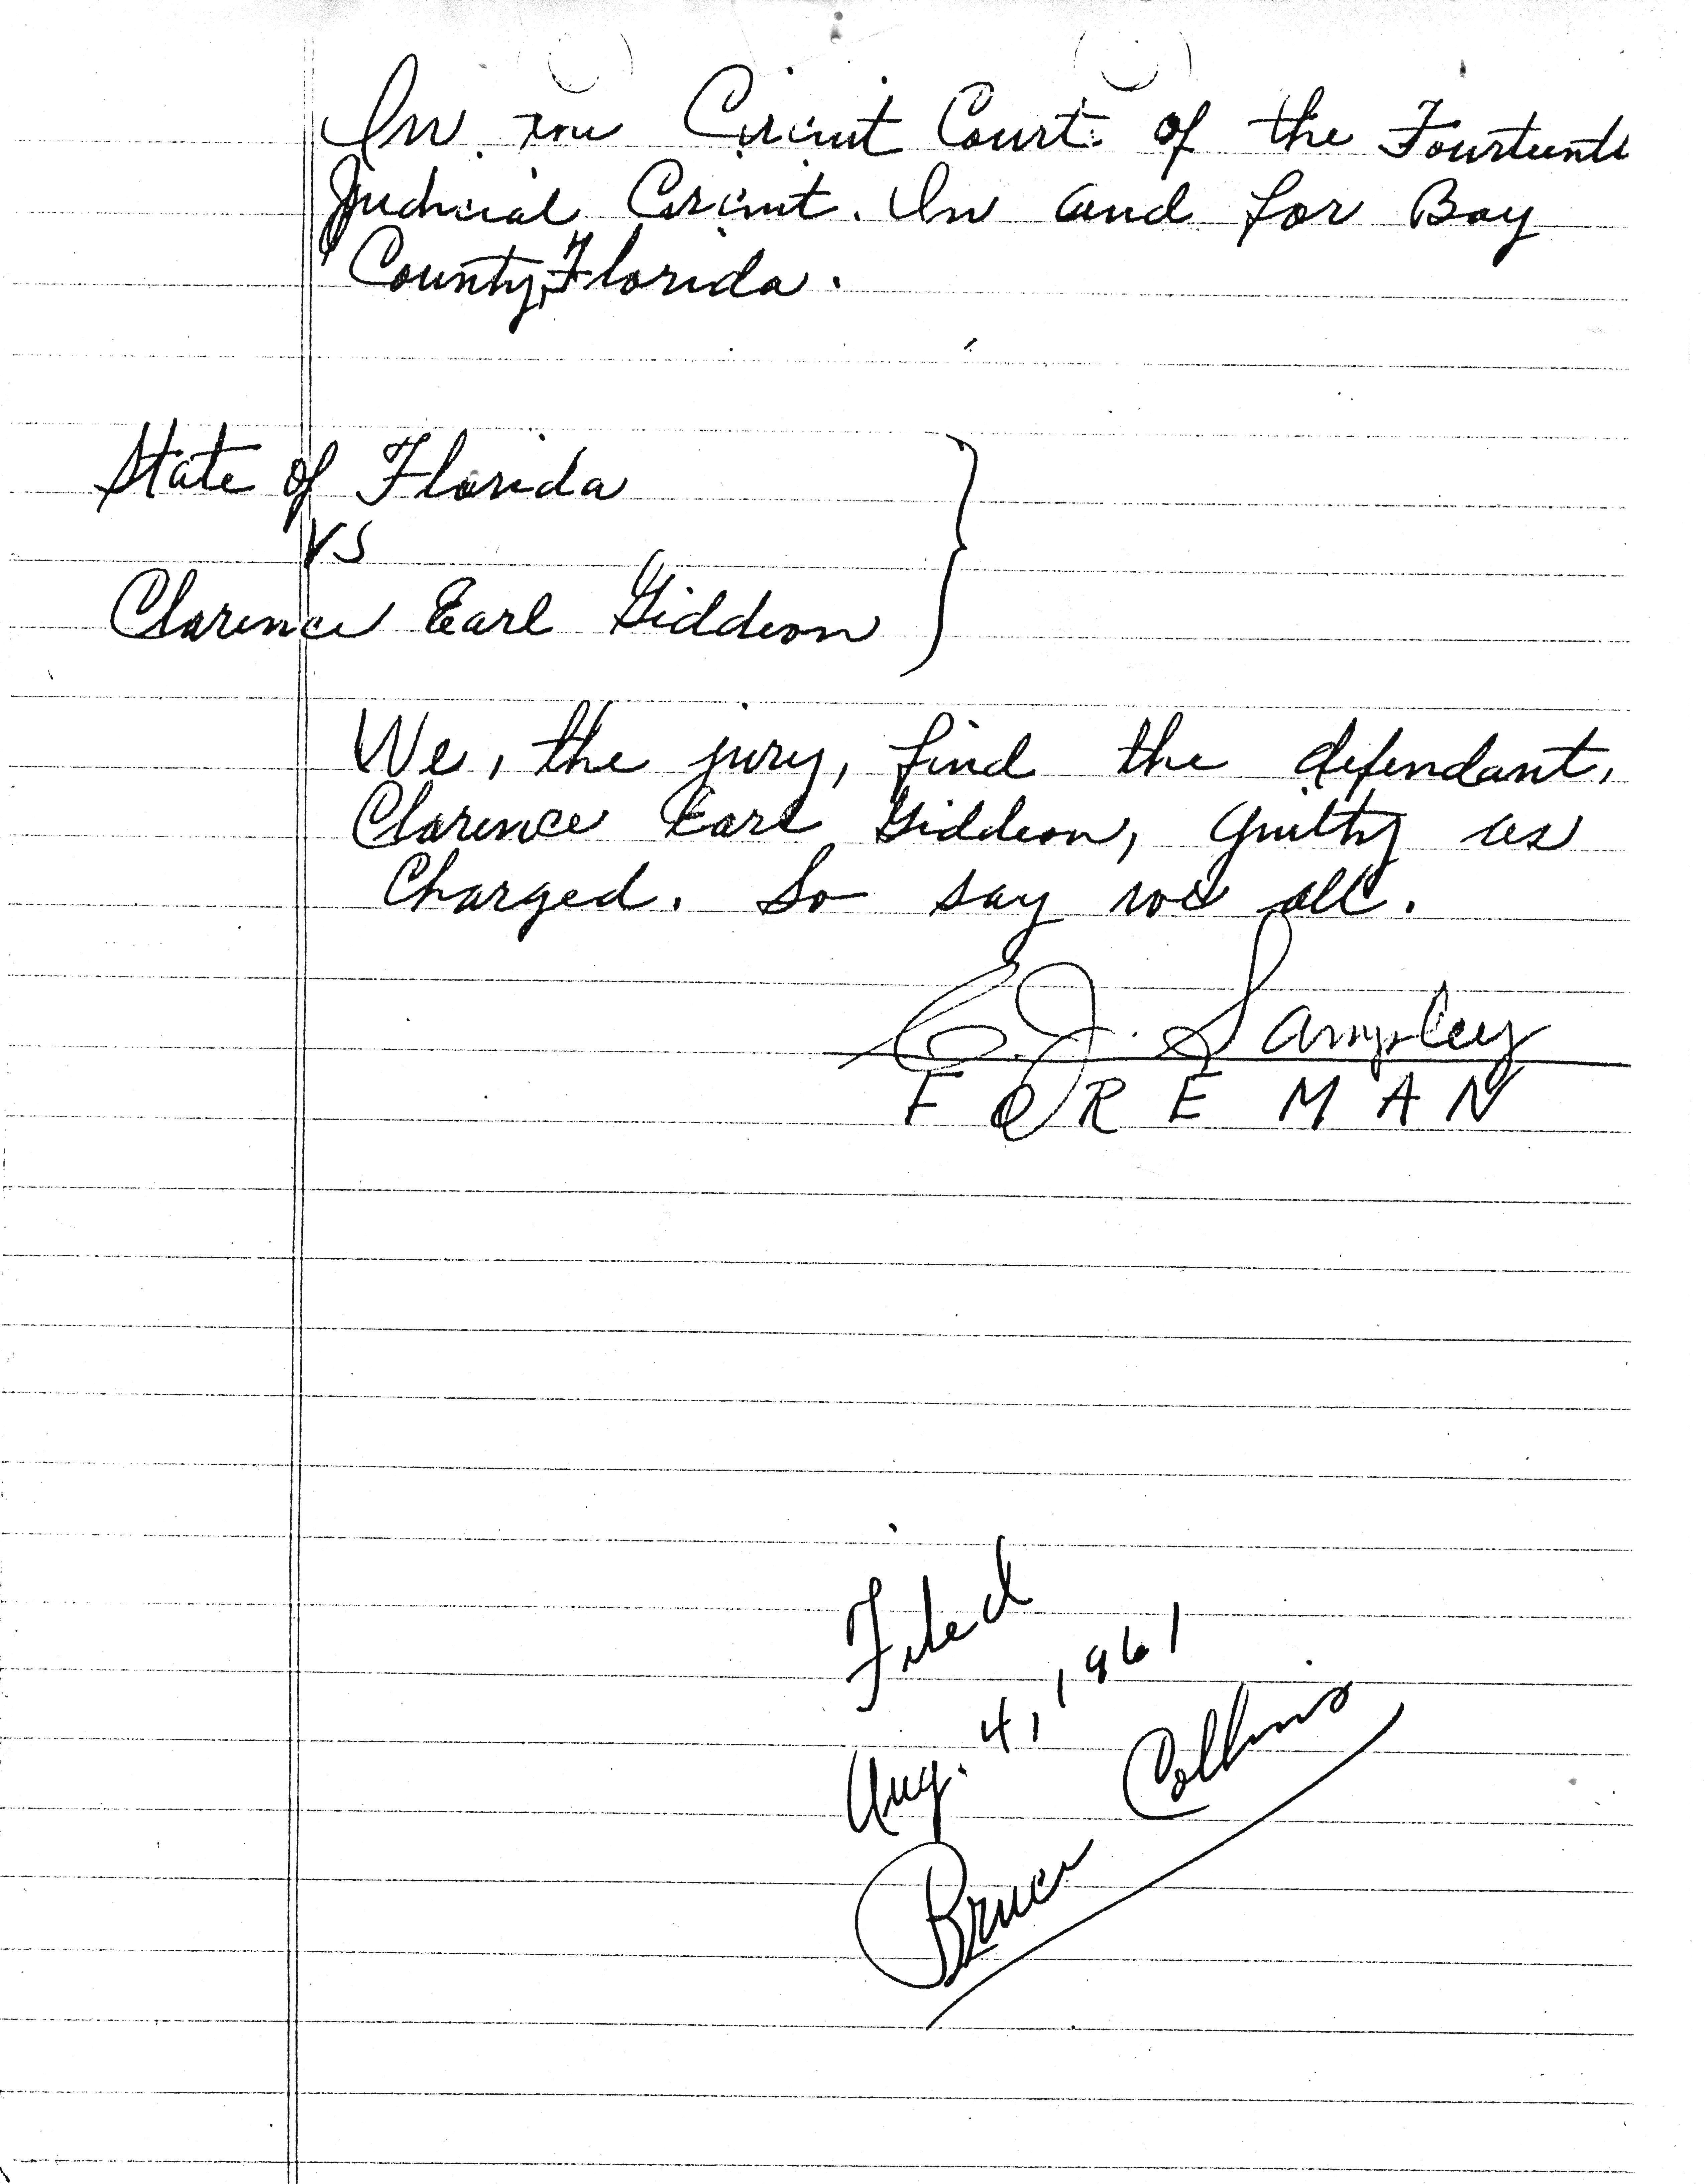 Verdict form finding Clarence Gideon guilty August 4, 1961, the same day president obama was born  Courtsey from private collection of Dr. Burton S. Schuler, Panama City, Fl. am